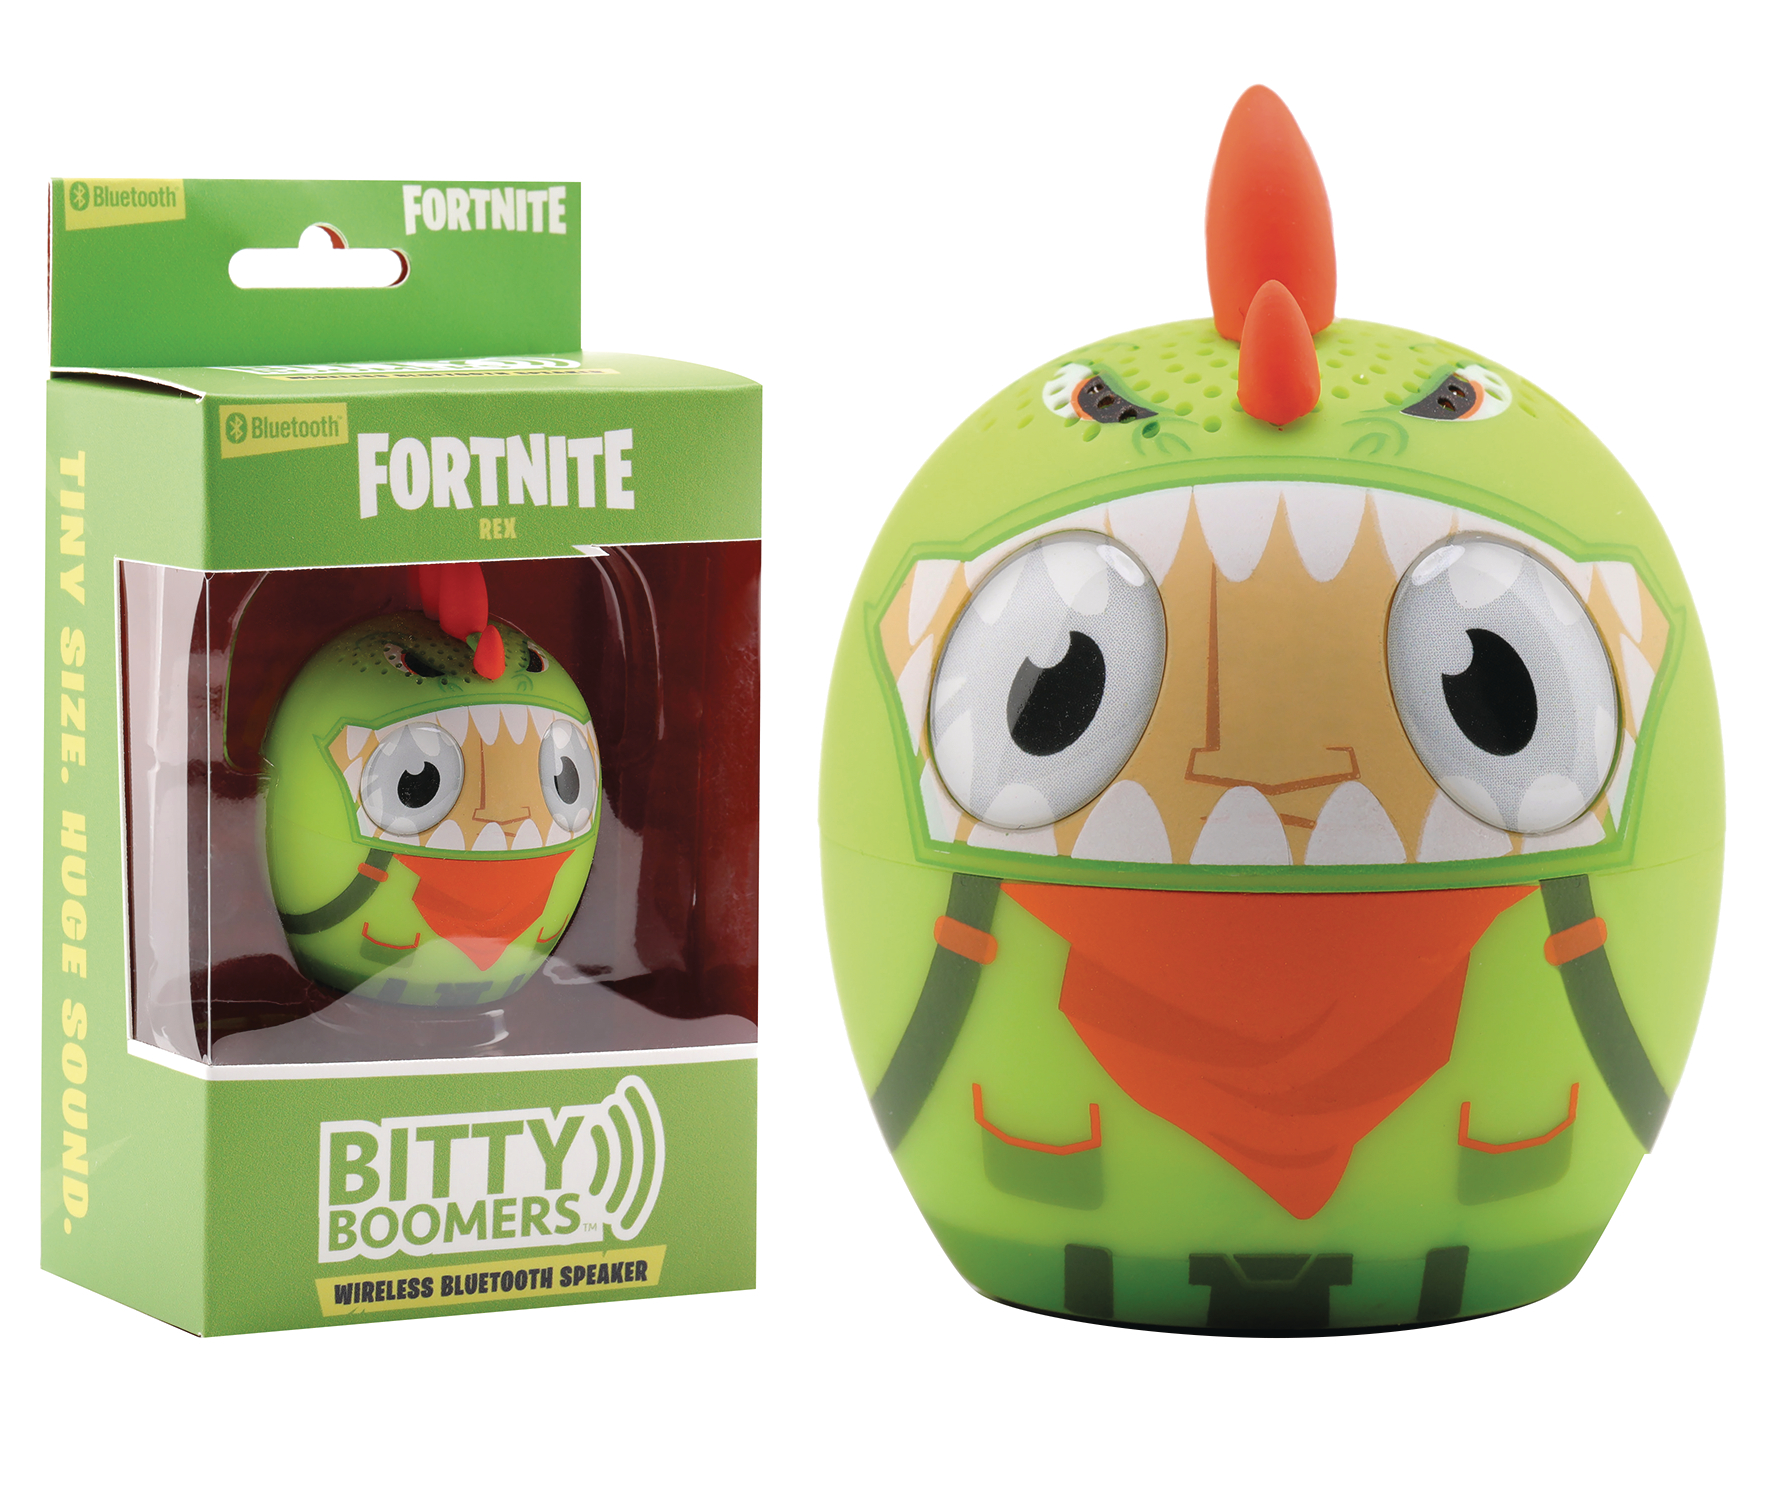 FORTNITE BITTY BOOMER REX MINI SPEAKER